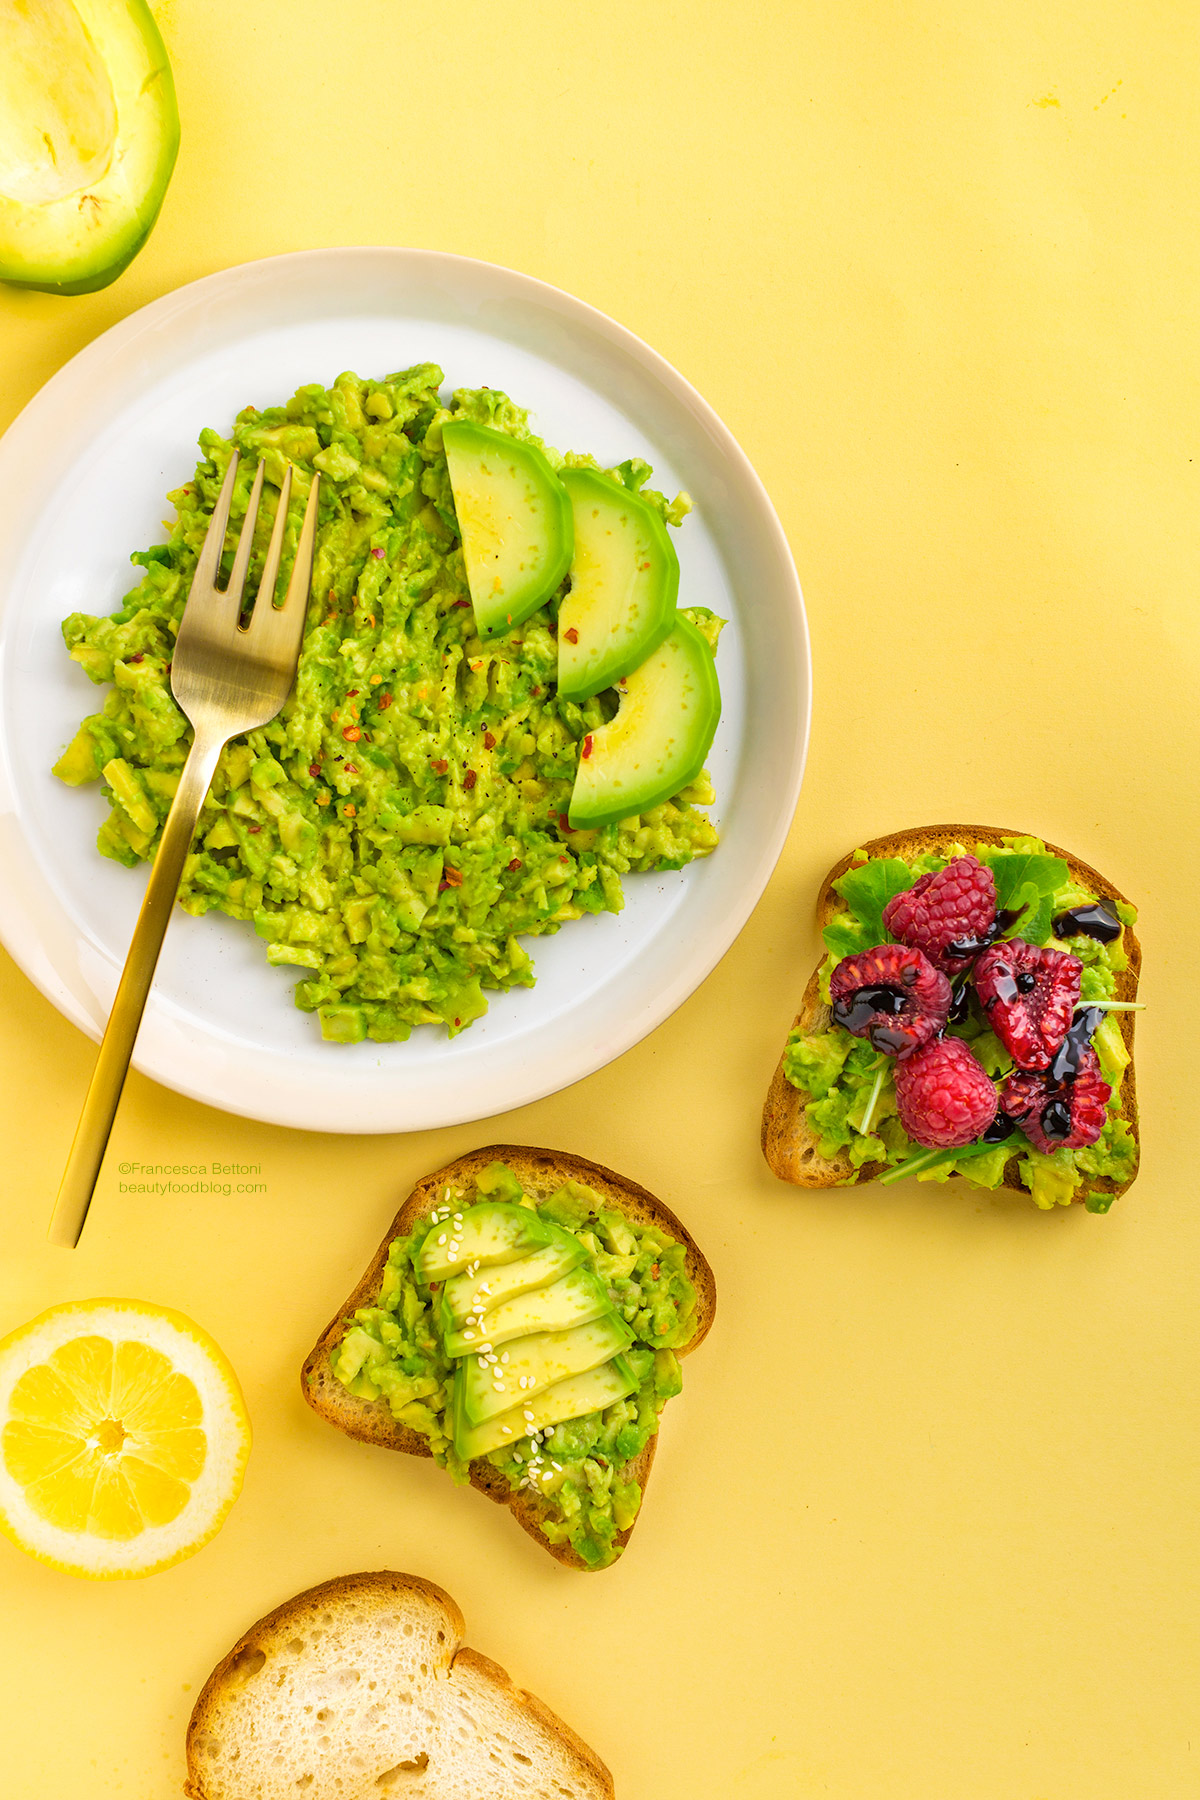 easy glutenfree vegan avocado toast recipe -ricetta avocado toast vegan senza glutine con lamponi facile e veloce